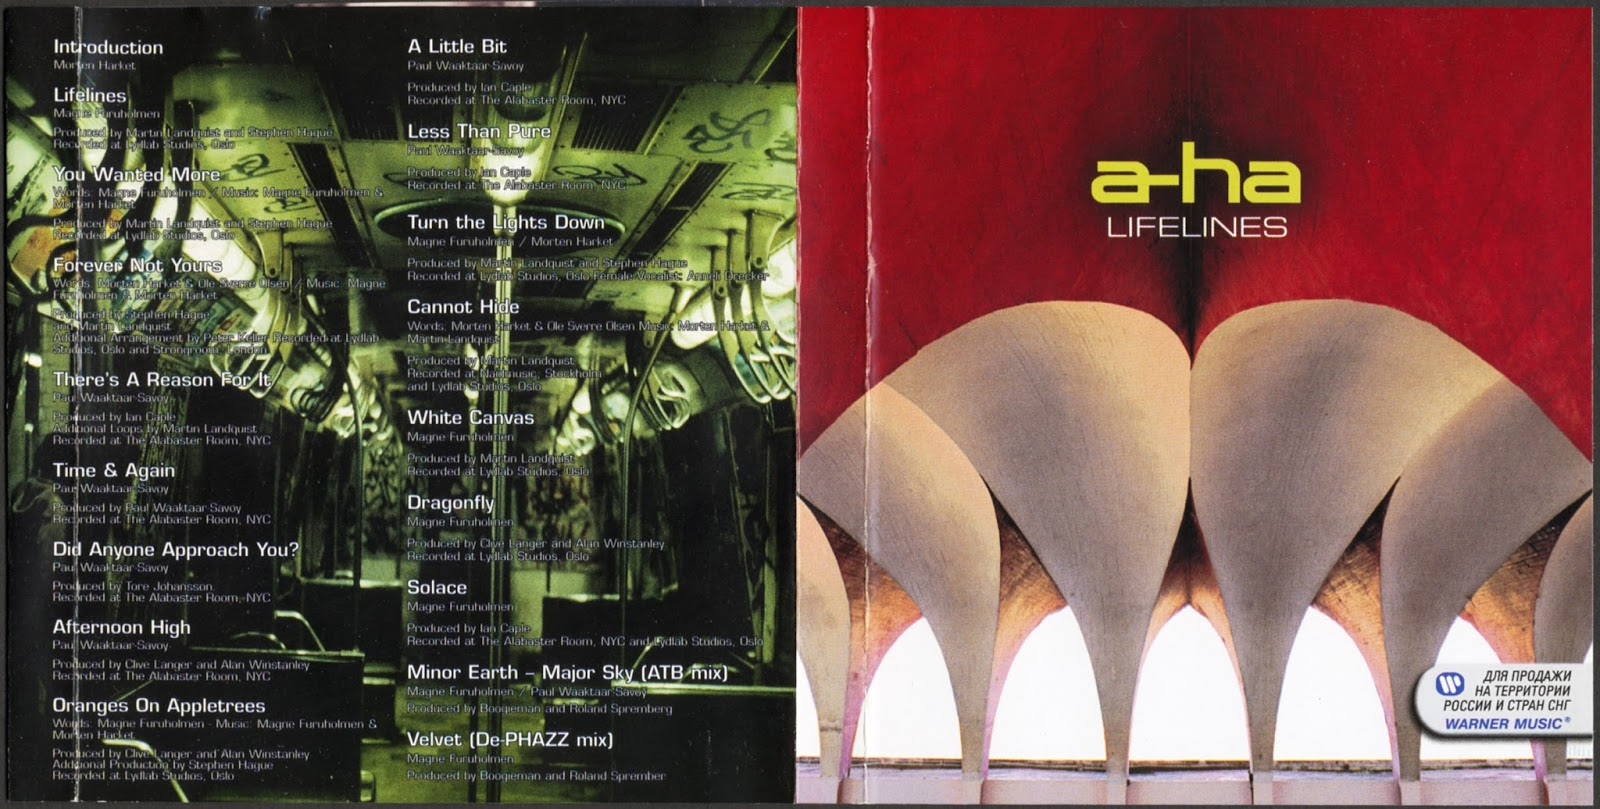 A-ha > Lifelines [for Russia]